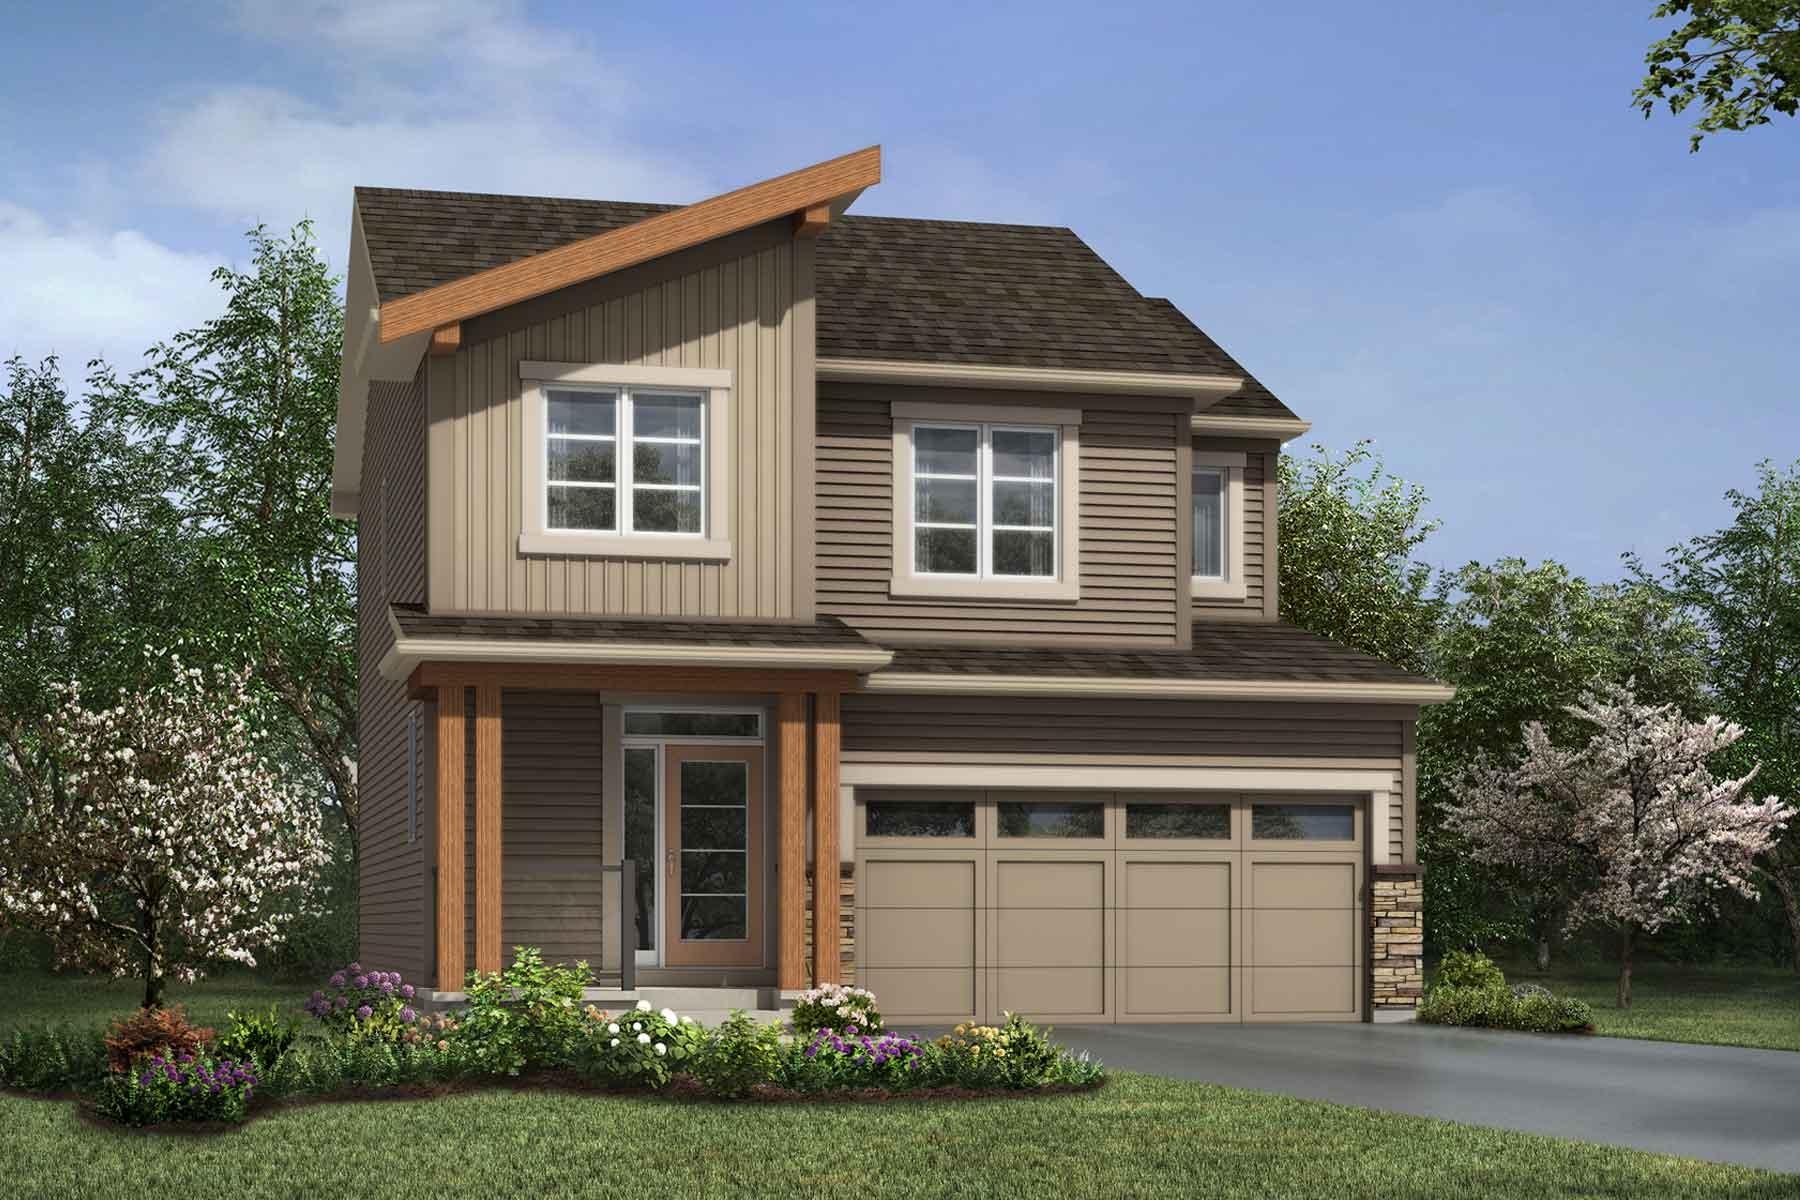 Yamnuska Plan elevationmountaincontemporary_carrington_yamnuska_main at Carrington in Calgary Alberta by Mattamy Homes